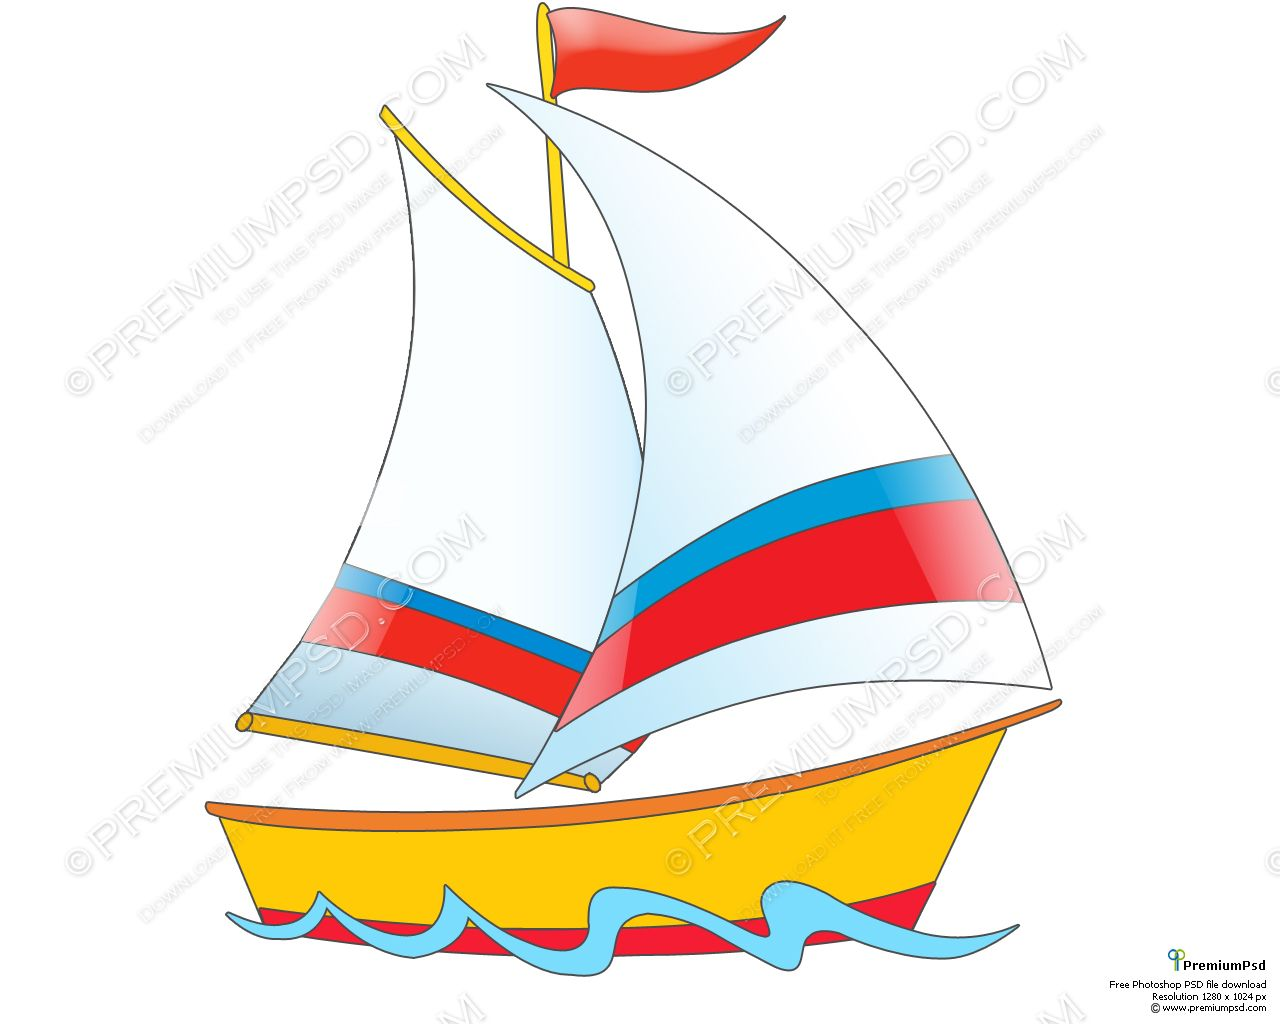 Cartoon Boat Cartoon Ship Design Psd Download Premium Psd